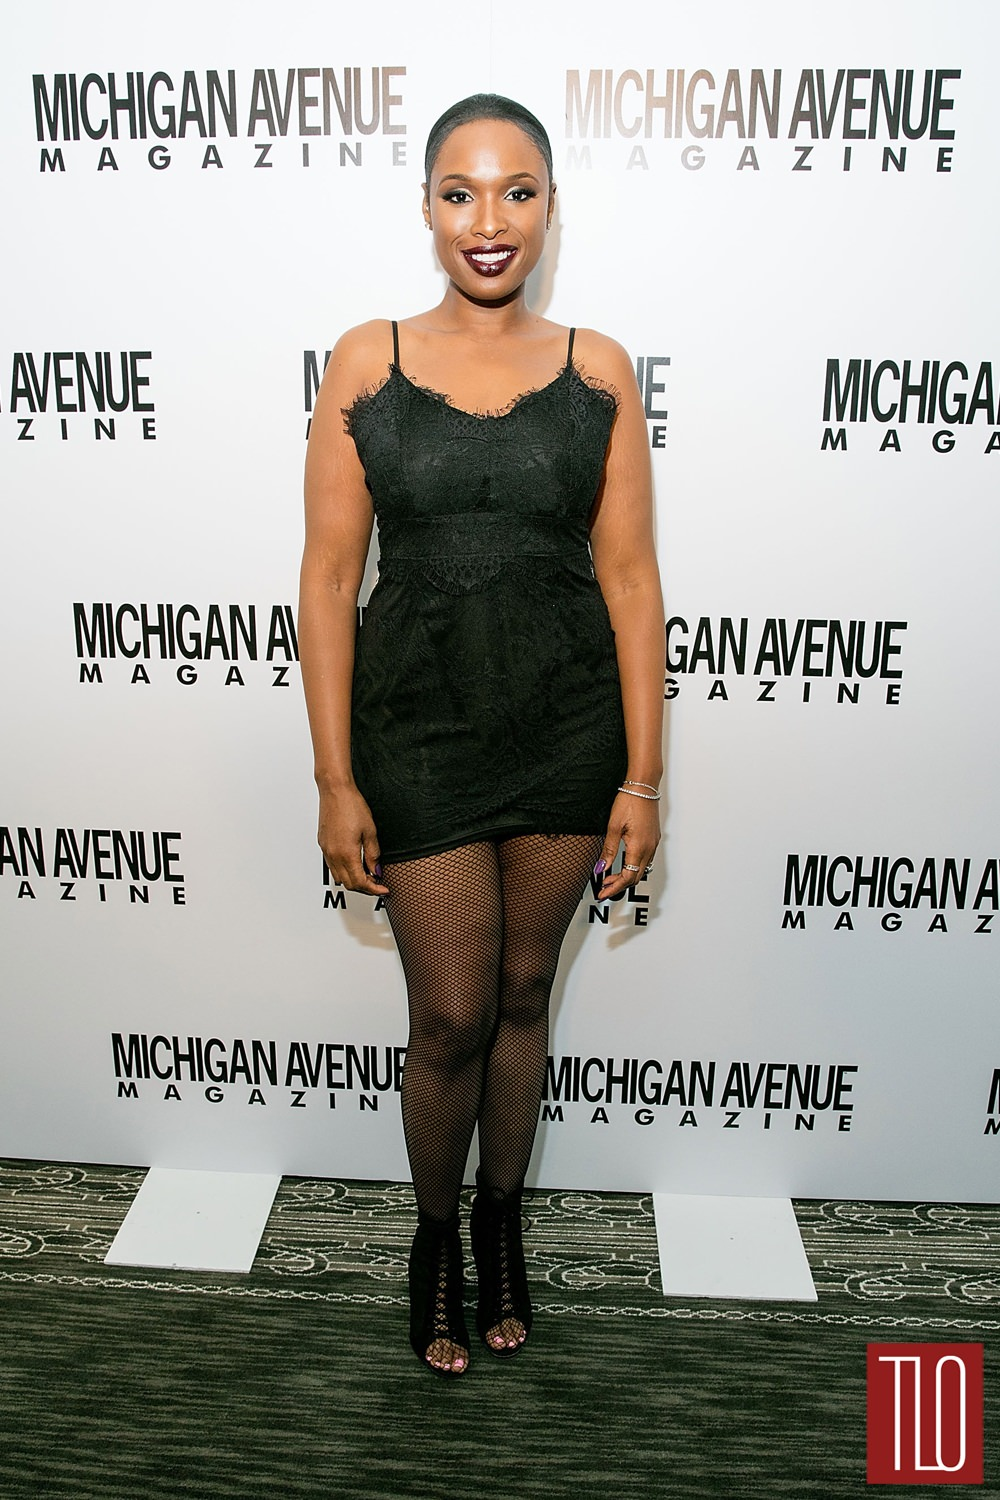 Jennifer-Hudson-Michigan-Avenue-Event-Red-Carpet-Fashion-Tom-Loenzo-Site-TLO-1